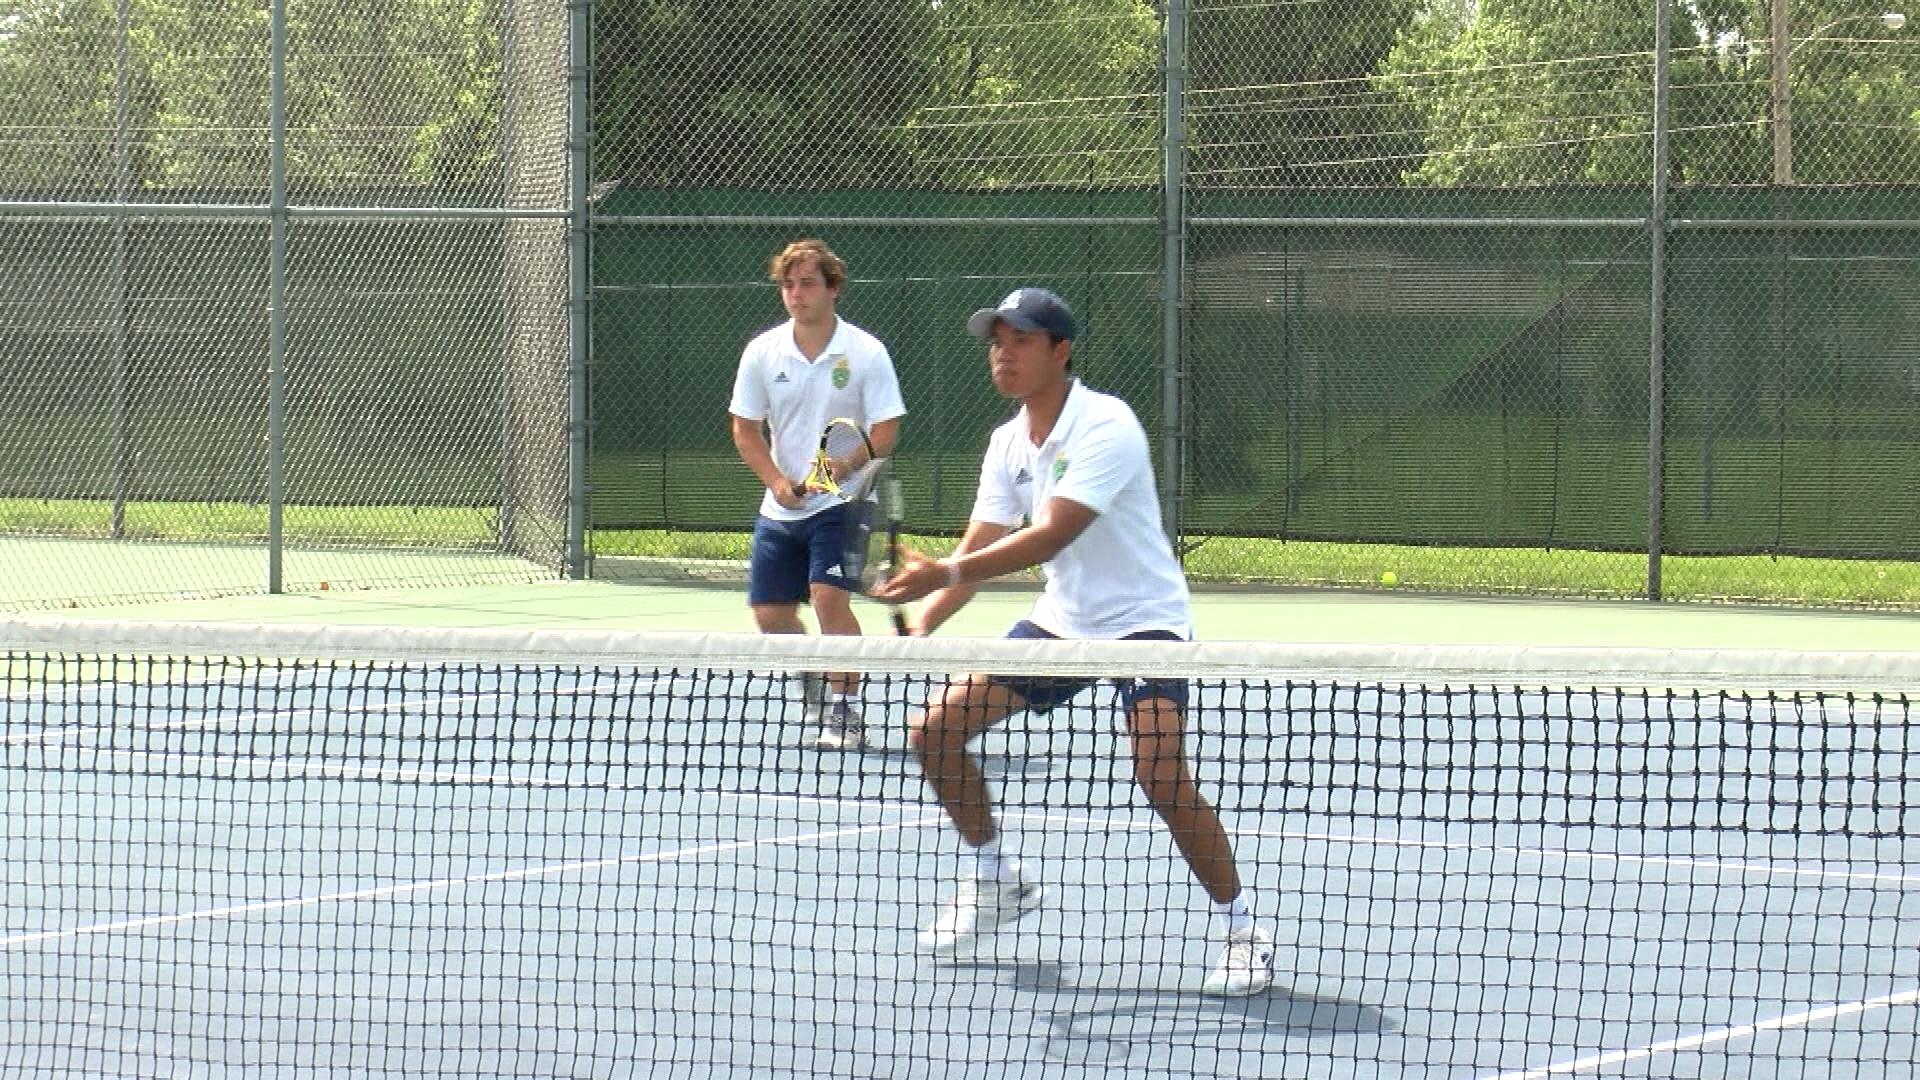 catholic tennis_1558739370900.jpg.jpg